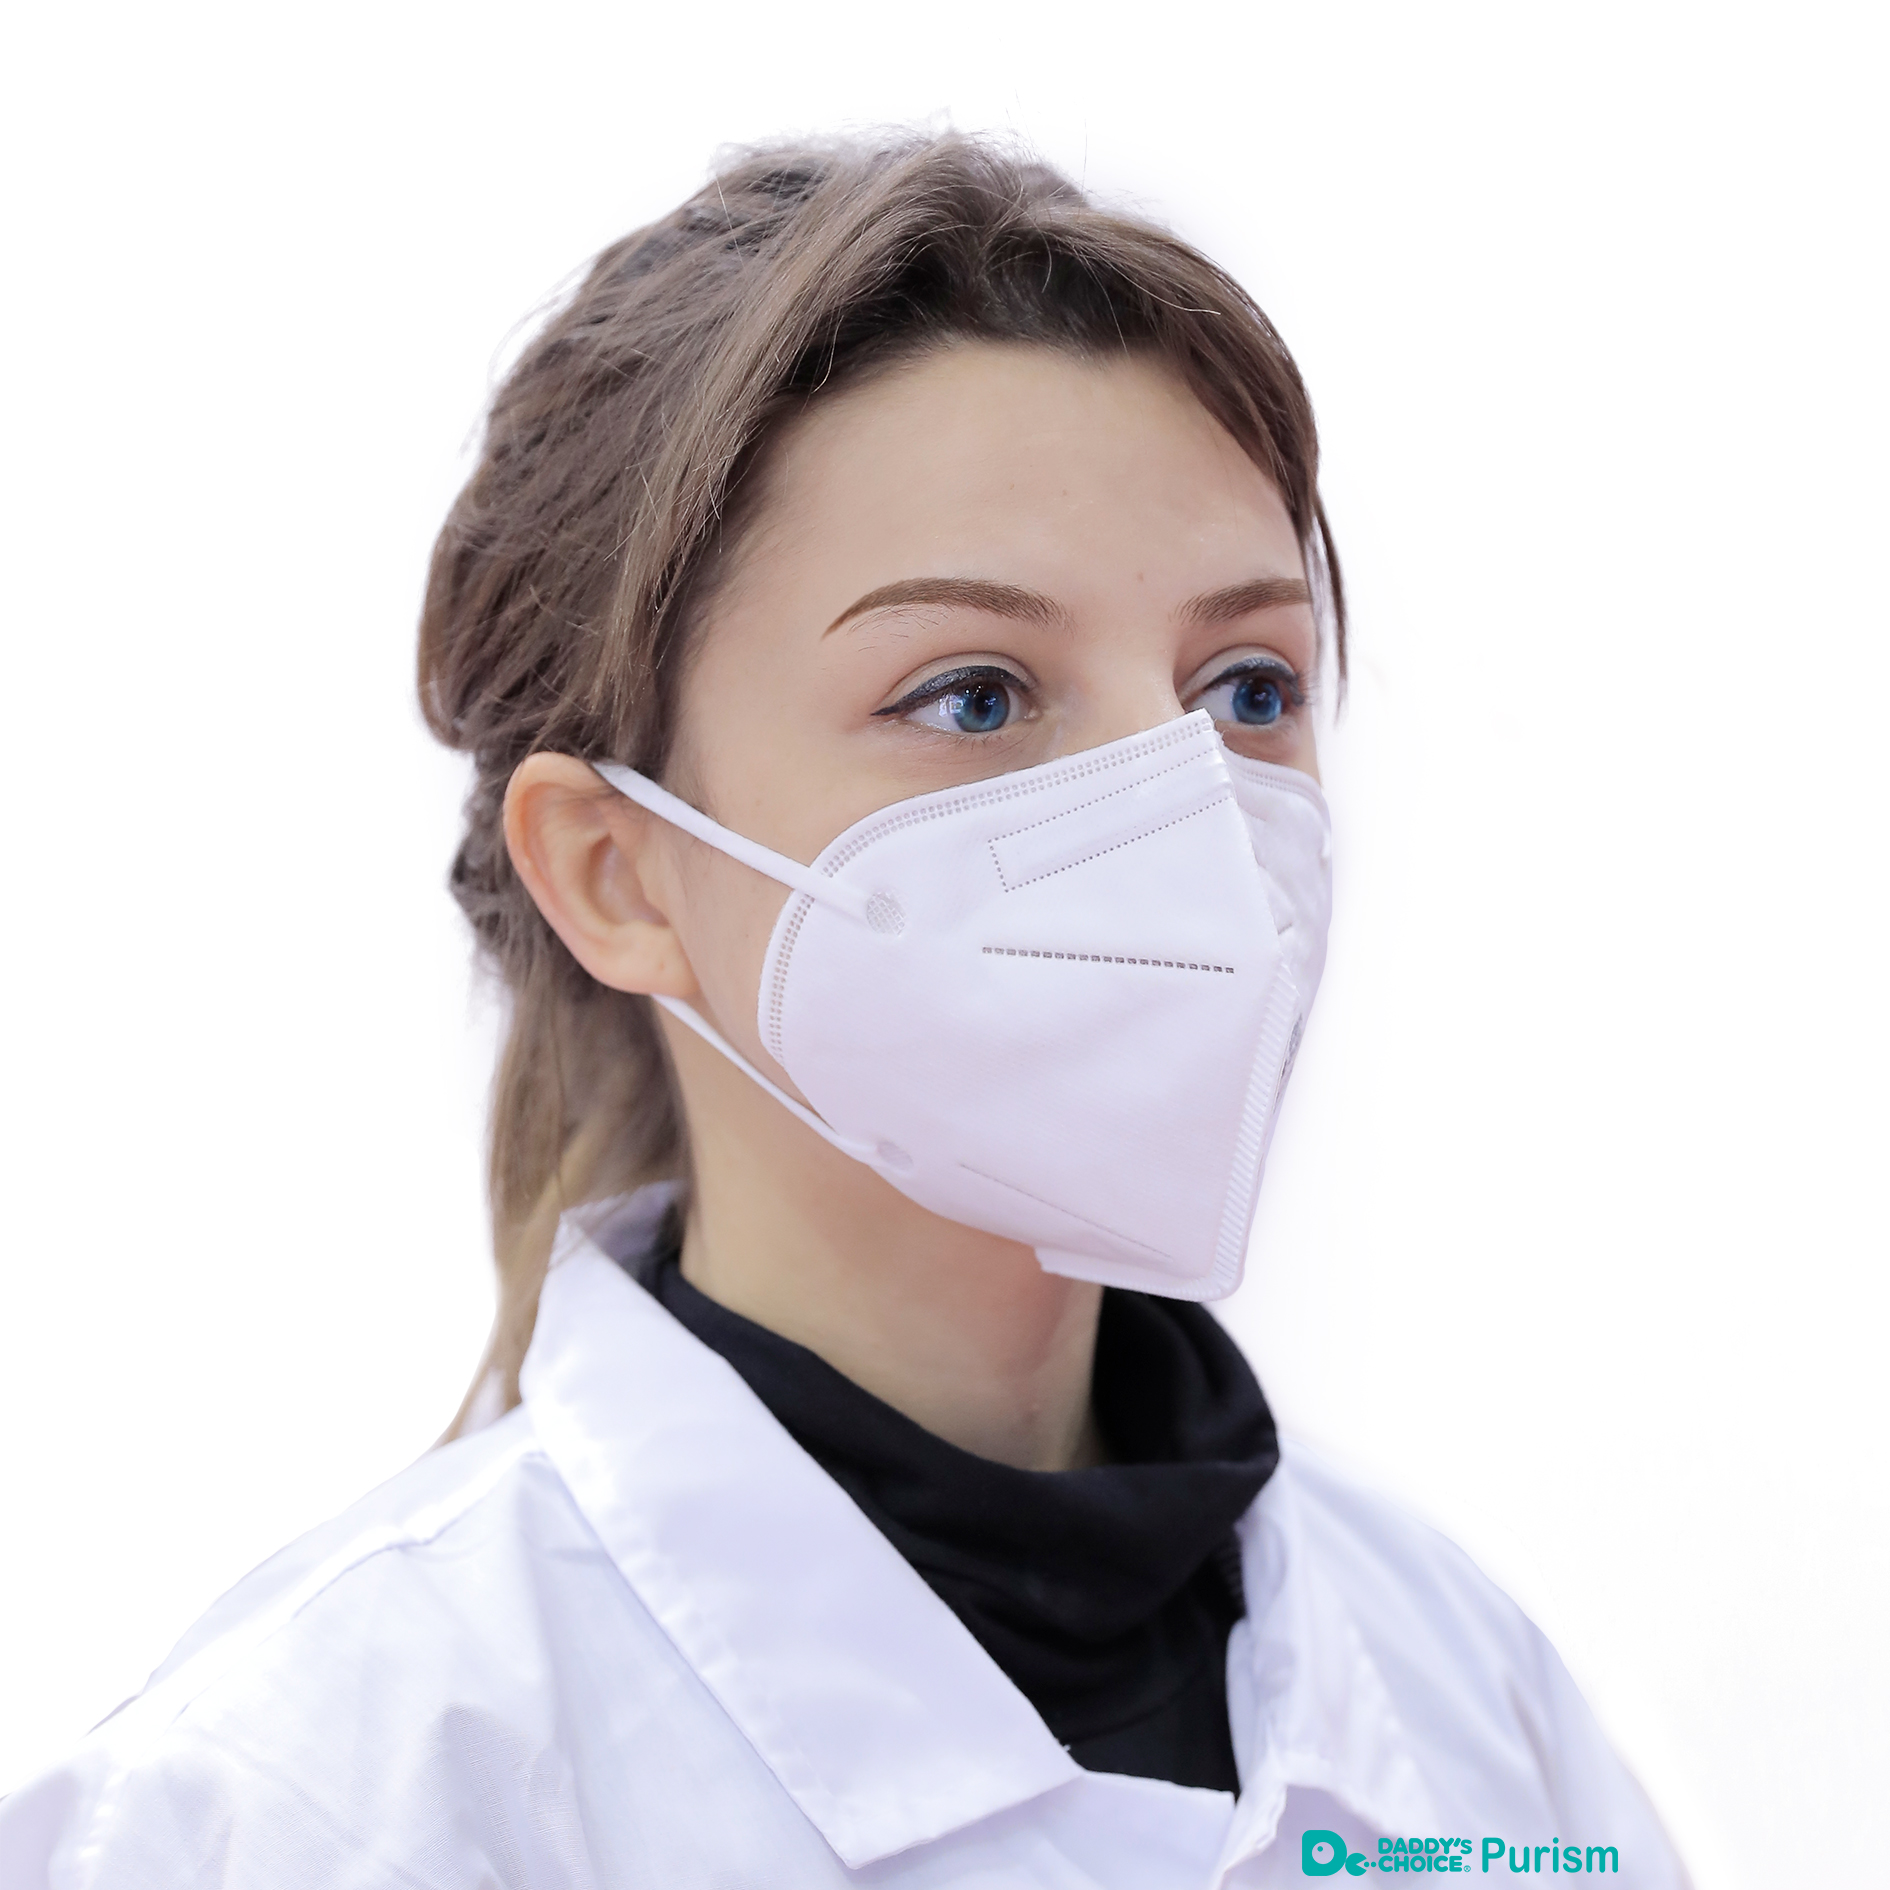 Daddy's Choice Purism KN95 ffp2 disposable face mask - KingCare   KingCare.net